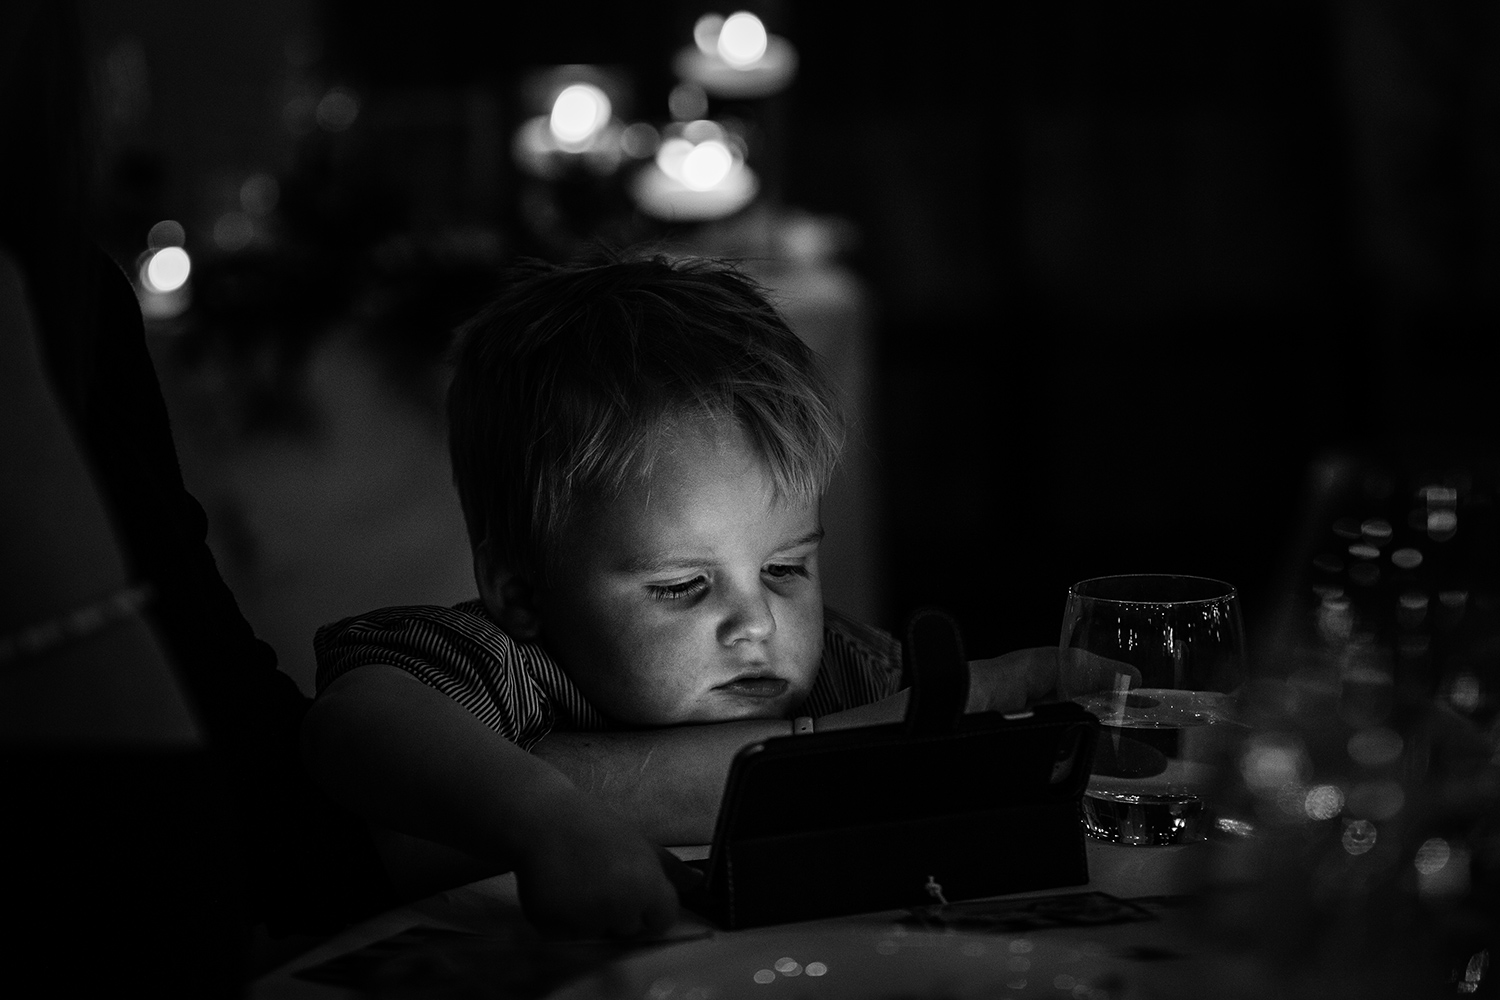 Child on an iPad at Holmes Mill